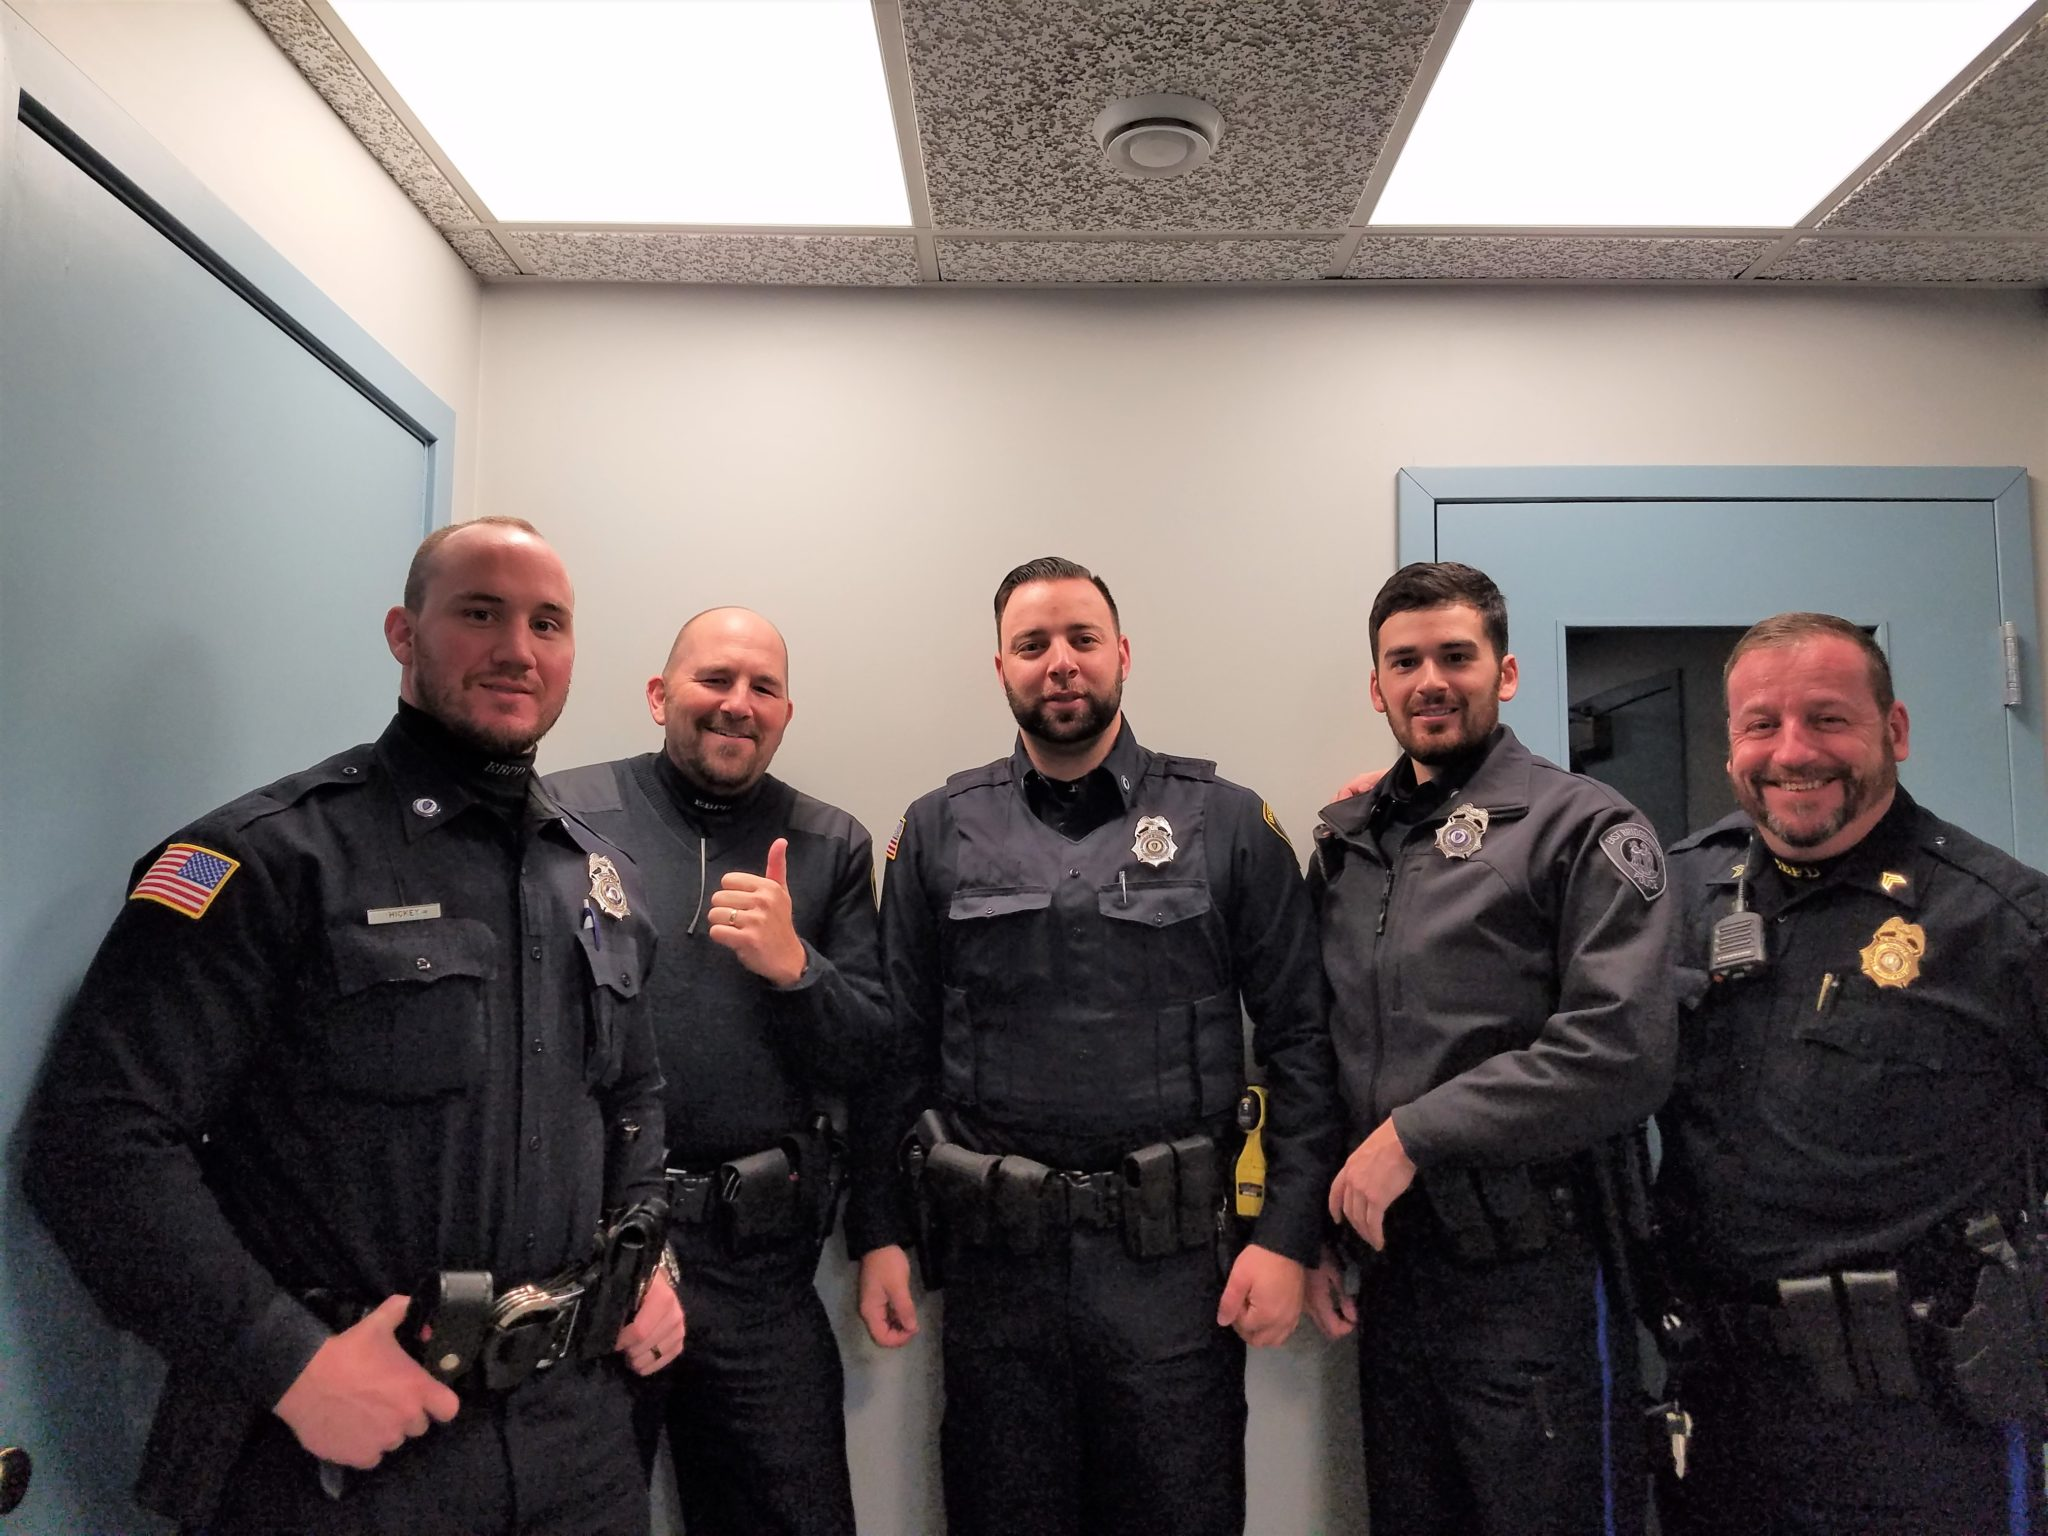 East Bridgewater Police Department's No Shave November